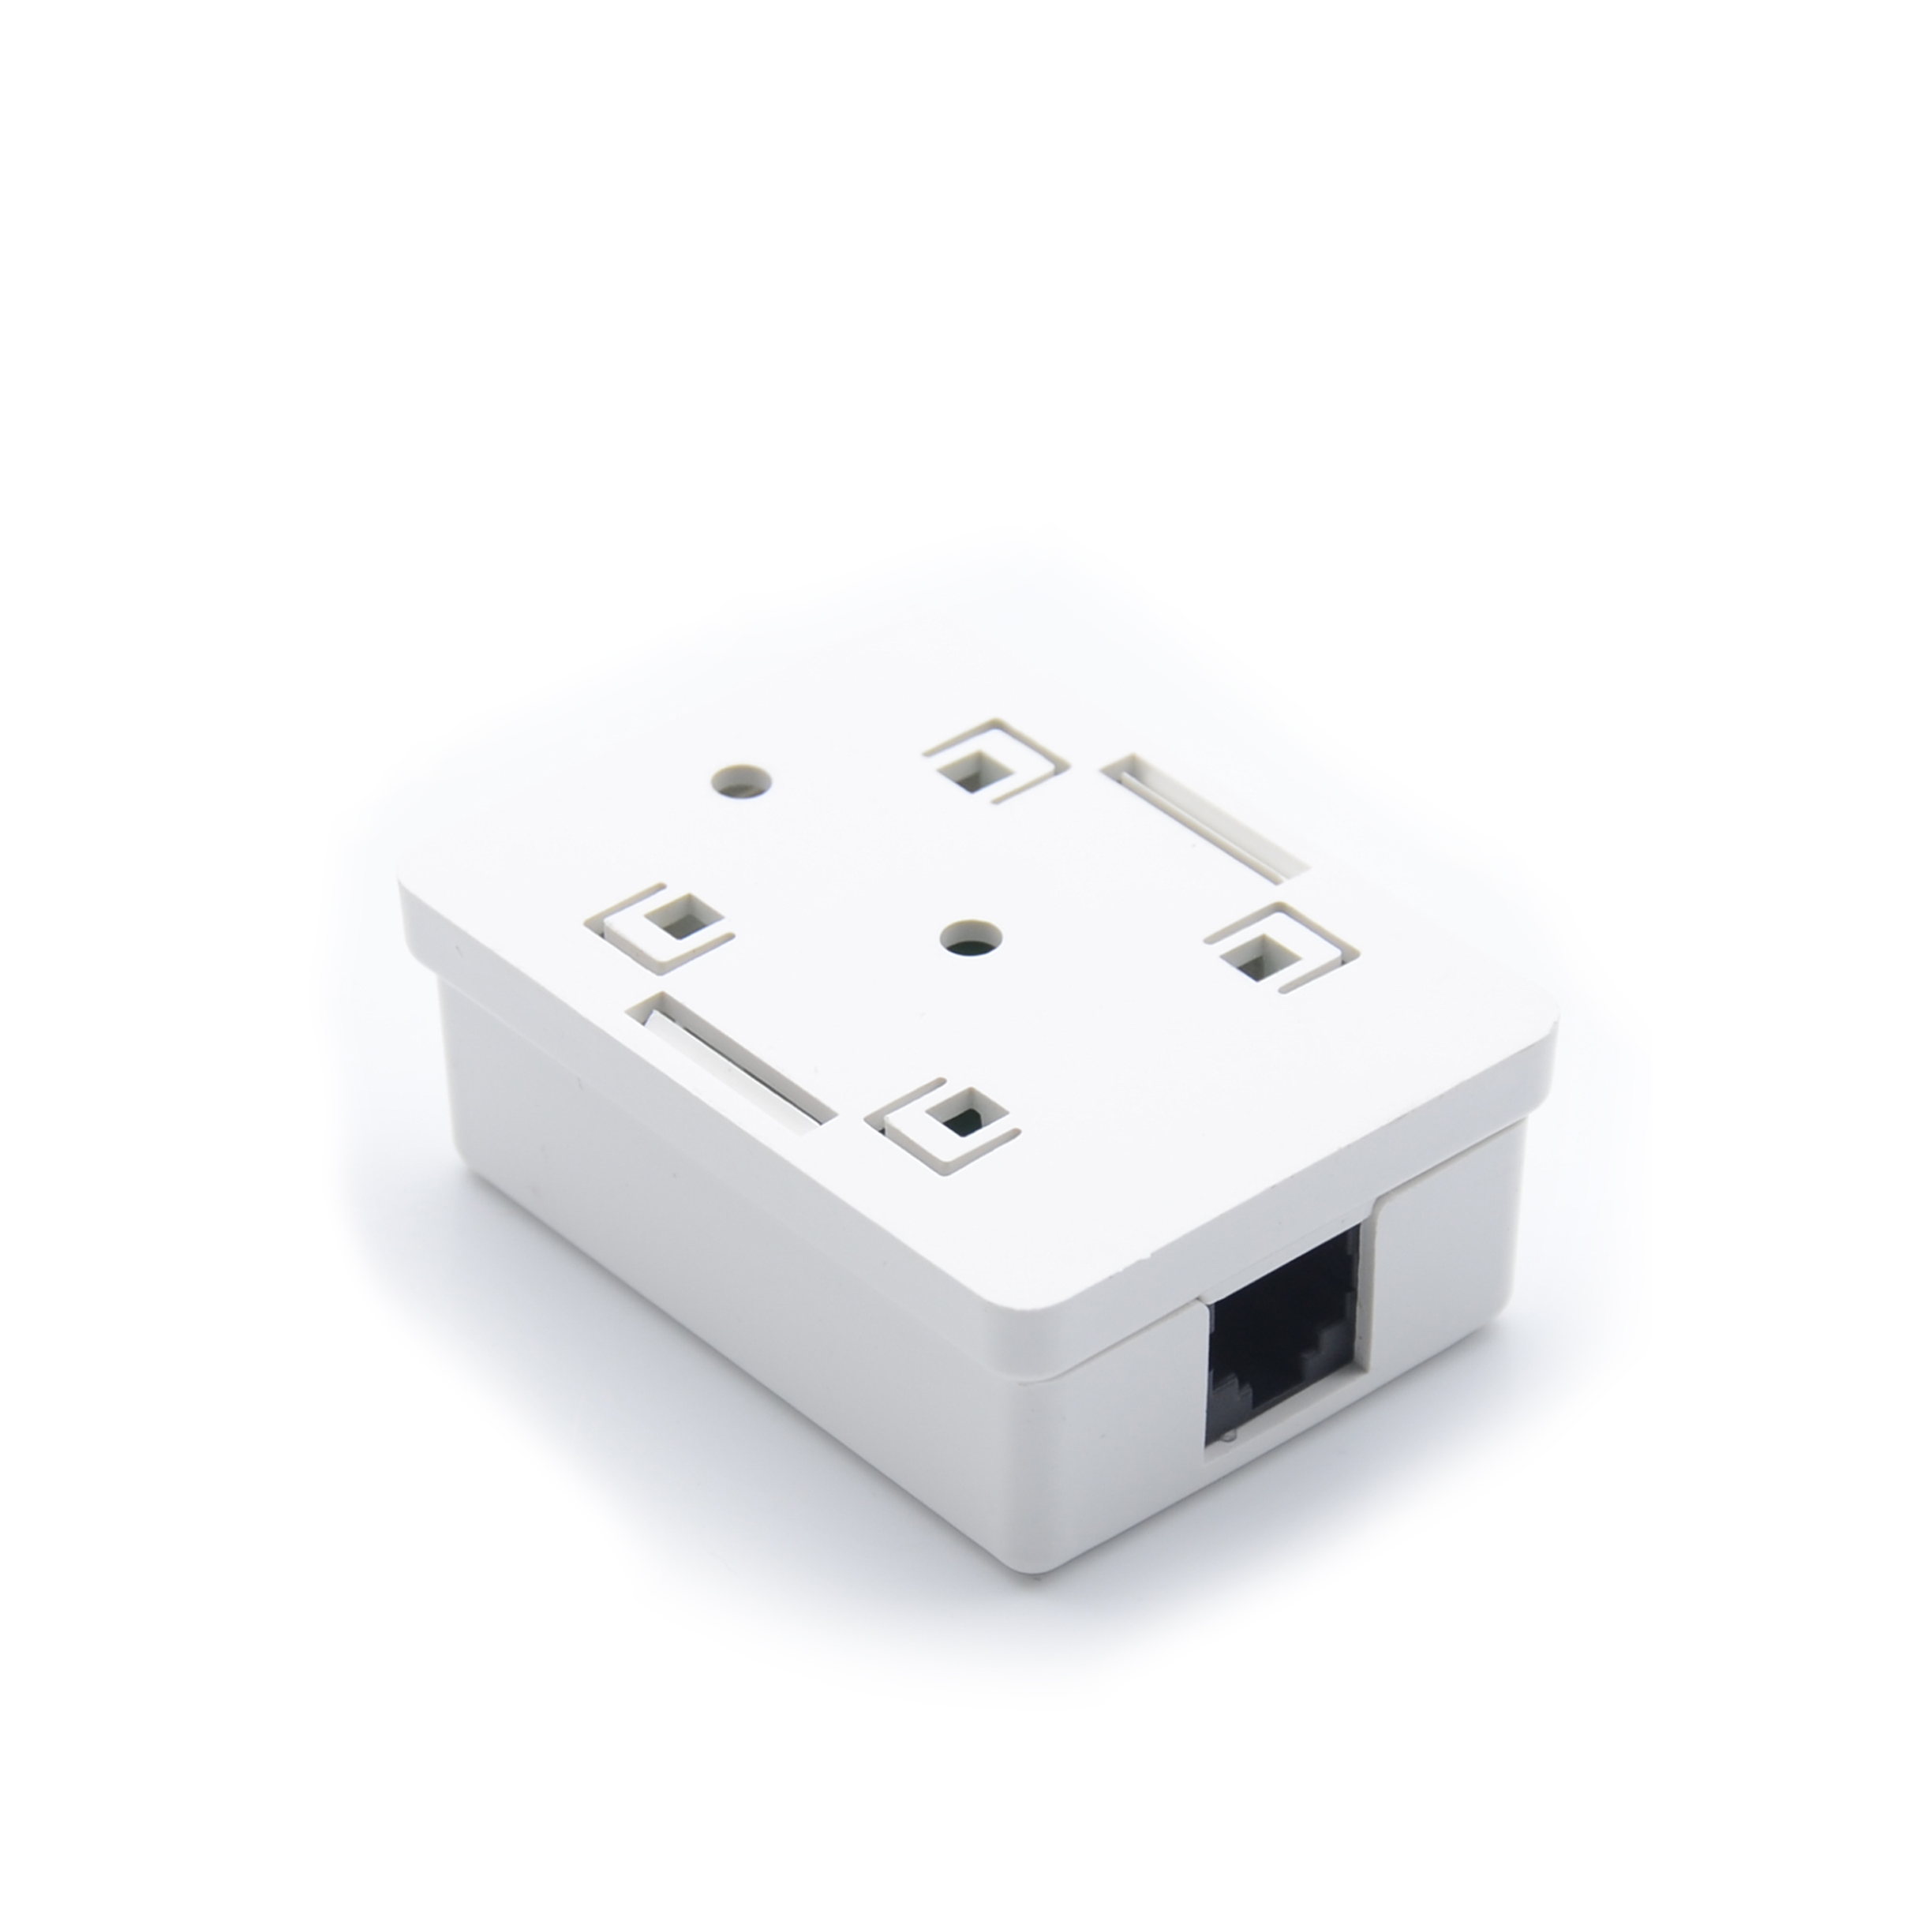 MT-5825 1 Port RJ45 Wall Outlet Single Port RJ45 Surface Mount Box CAT.5E CAT.6 UTP Type